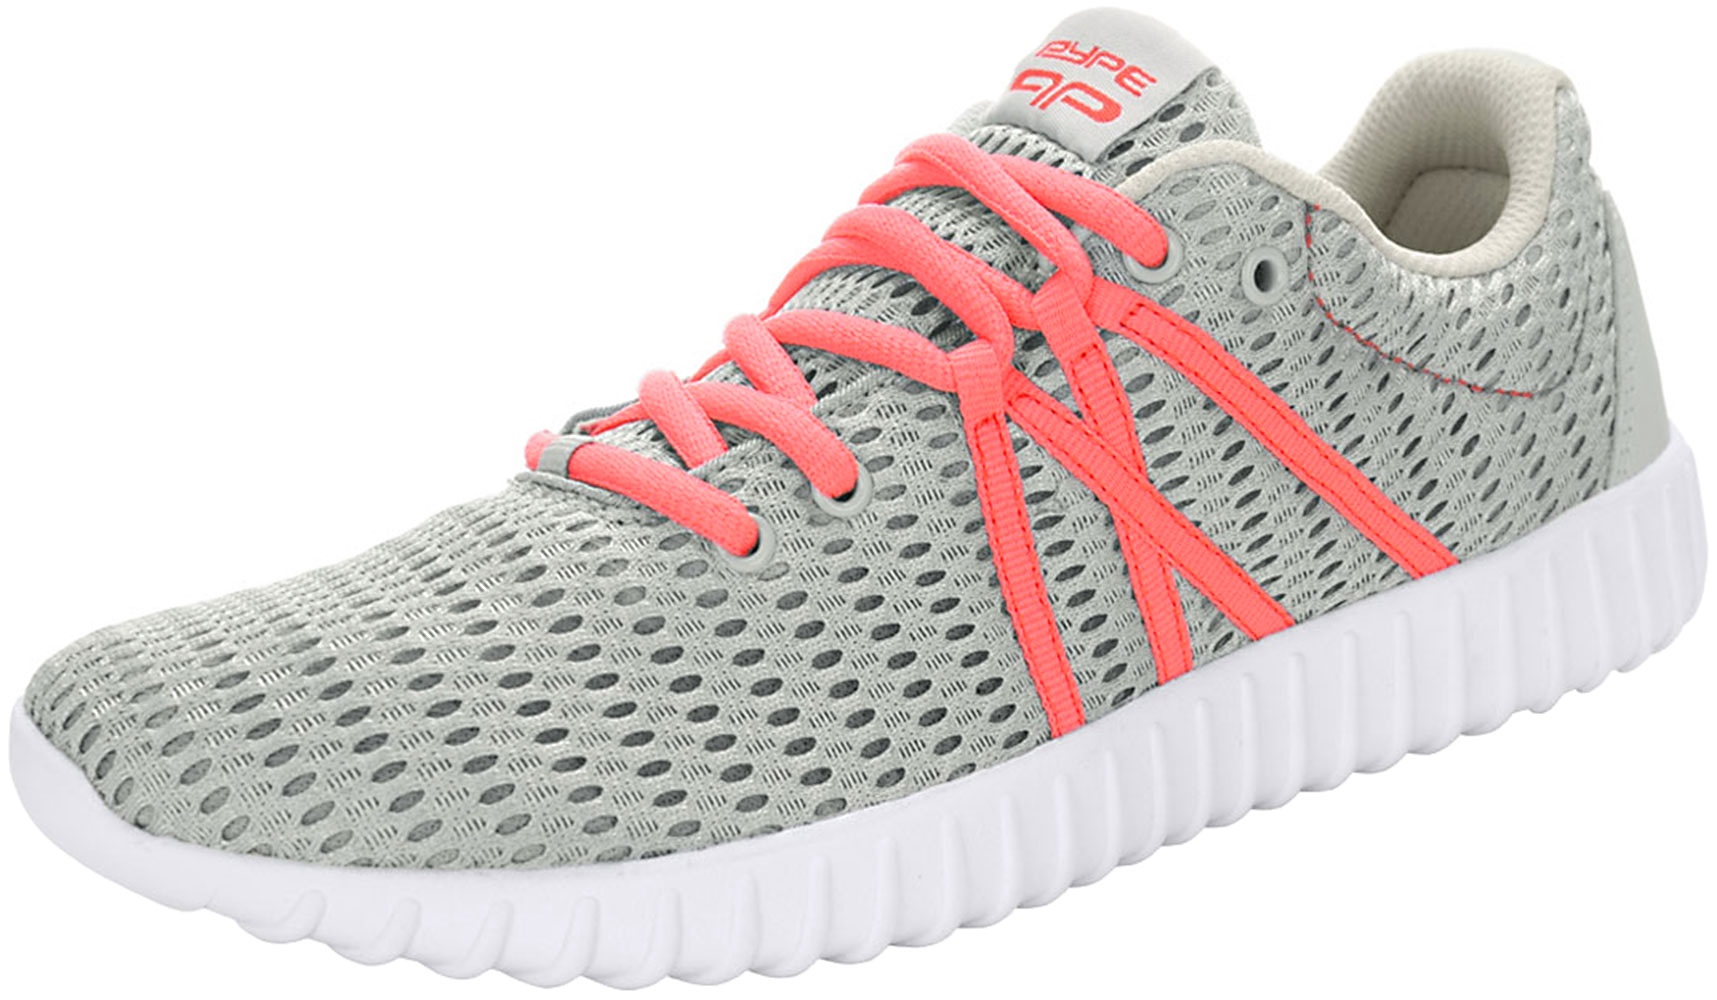 PYPE Women Contrast Color Lace Up Mesh Training Sneakers Gray US 8